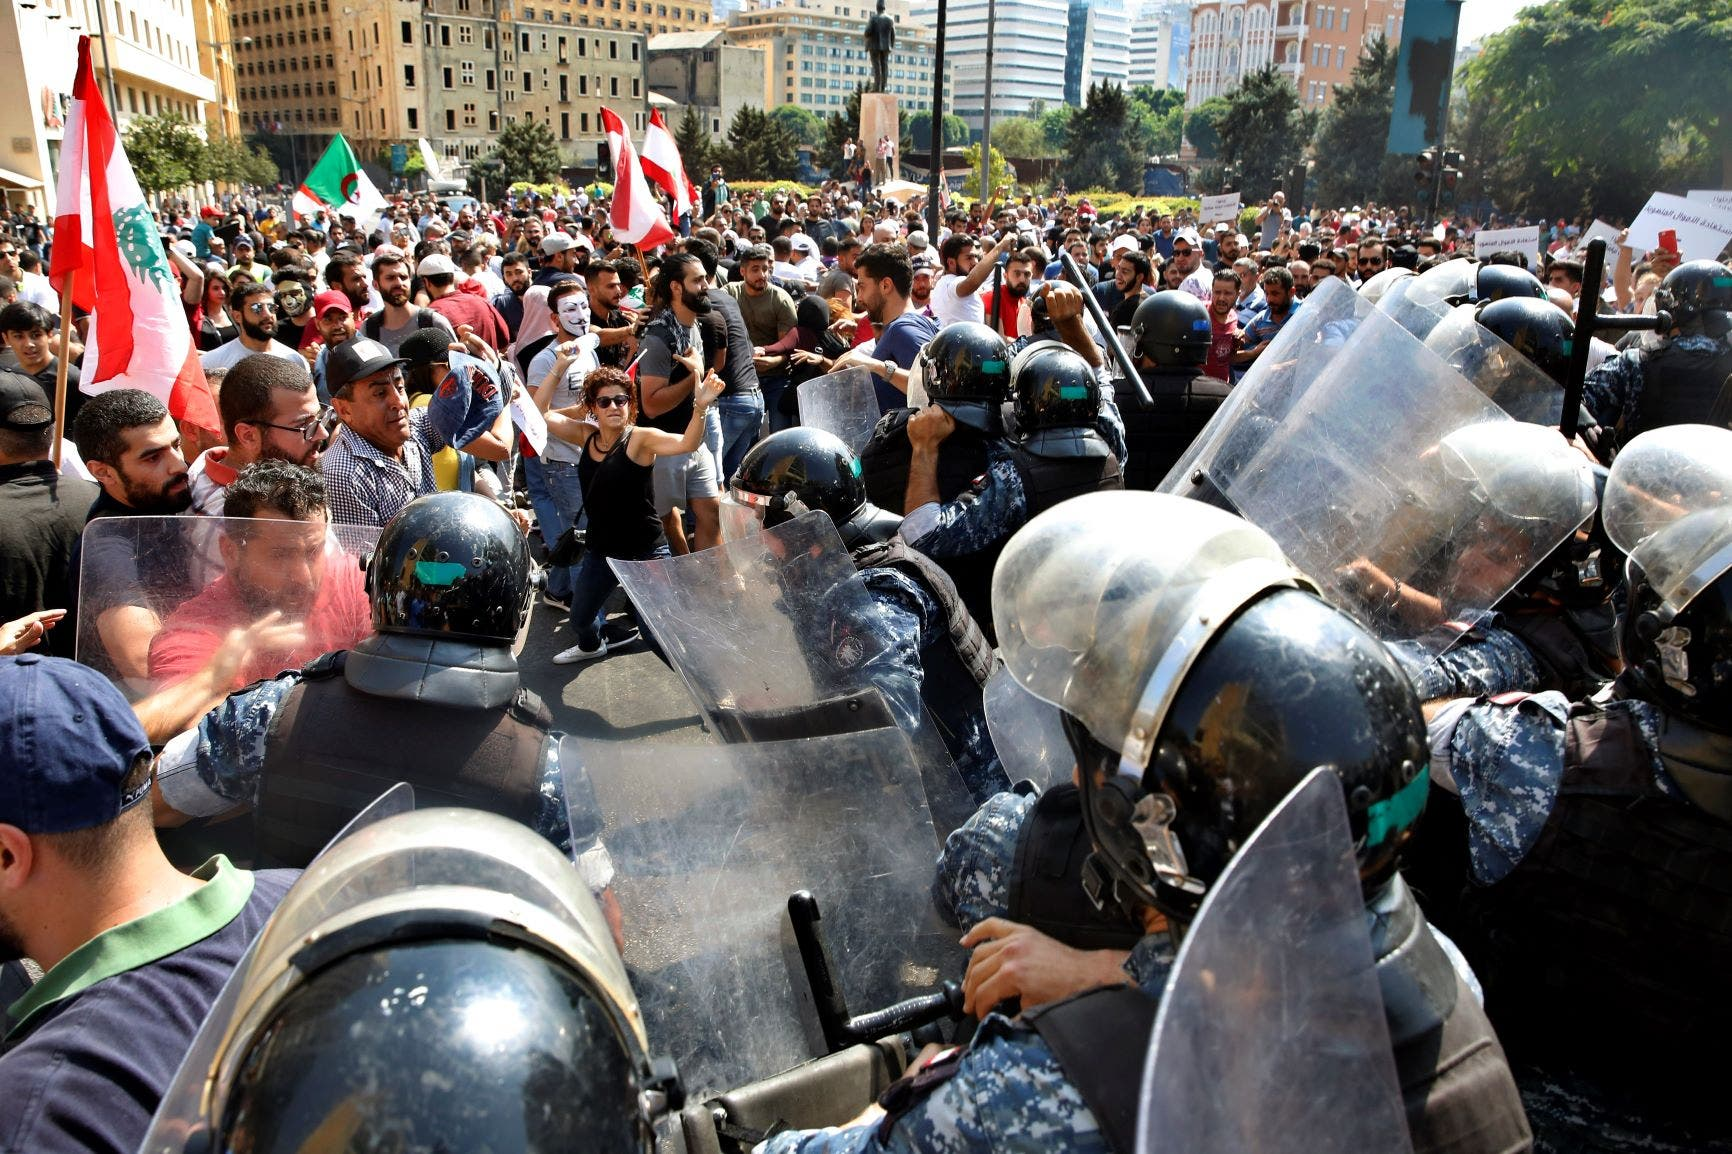 Lebanese security services' handling of protests is a clear human rights violation